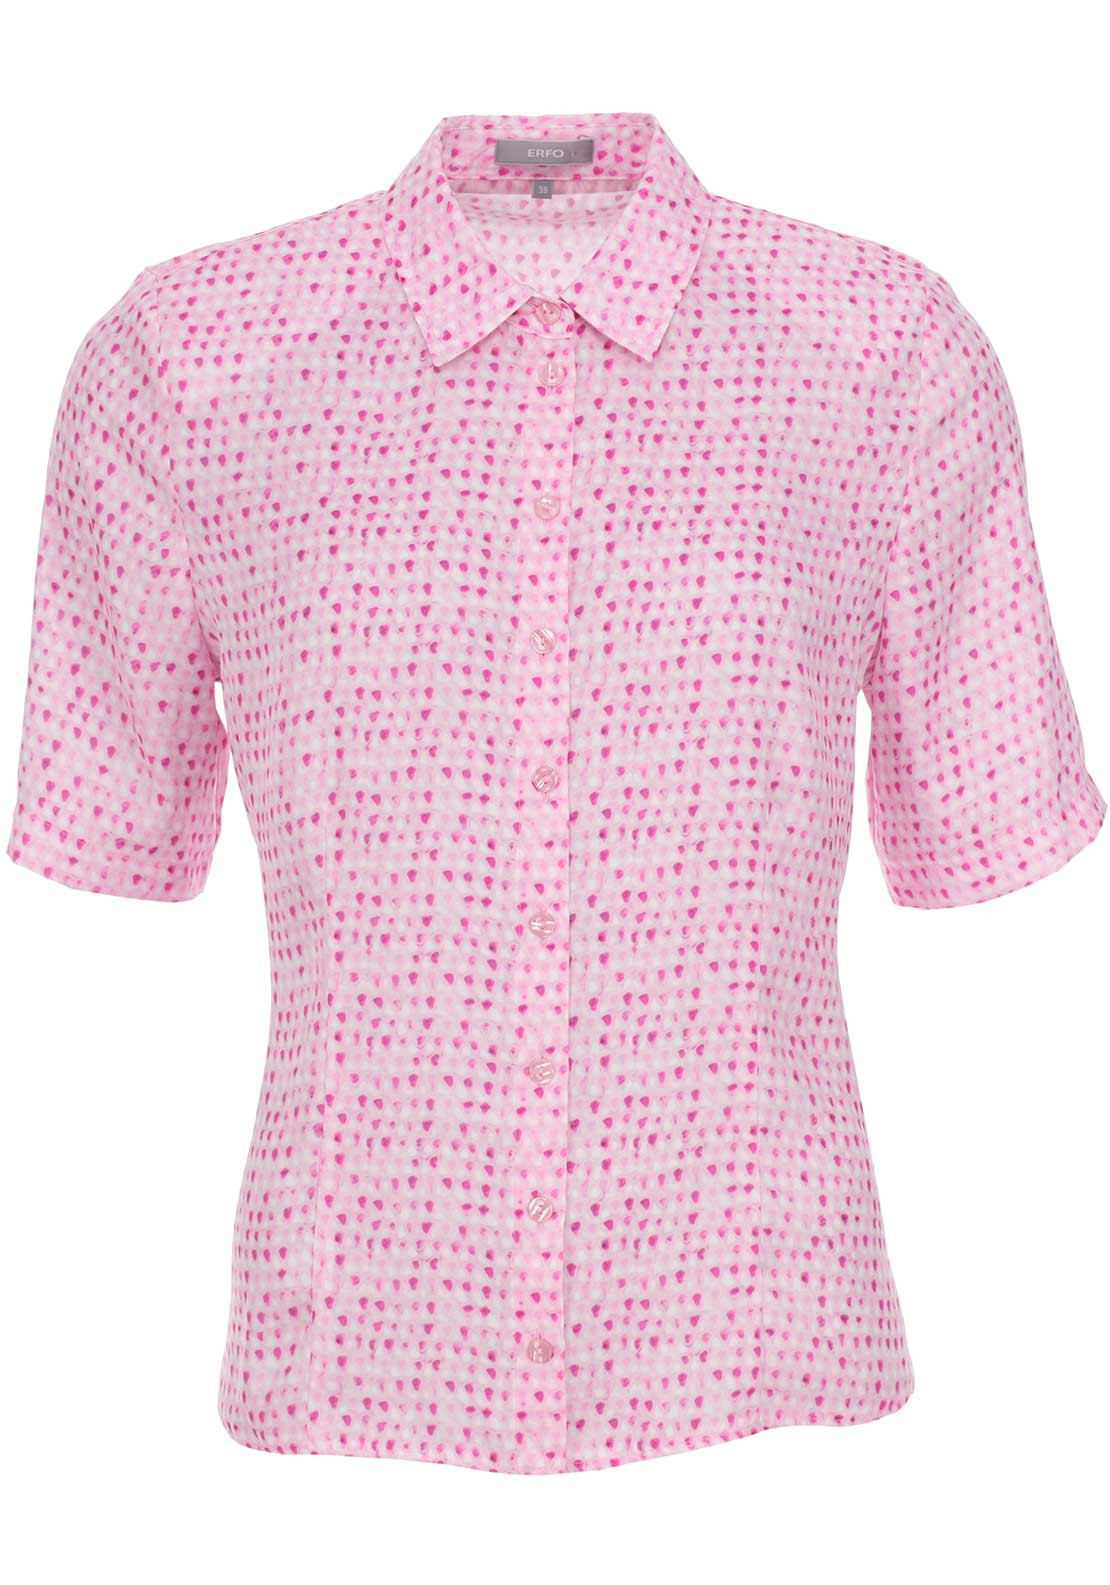 ERFO Printed Short Sleeve Blouse, Pink